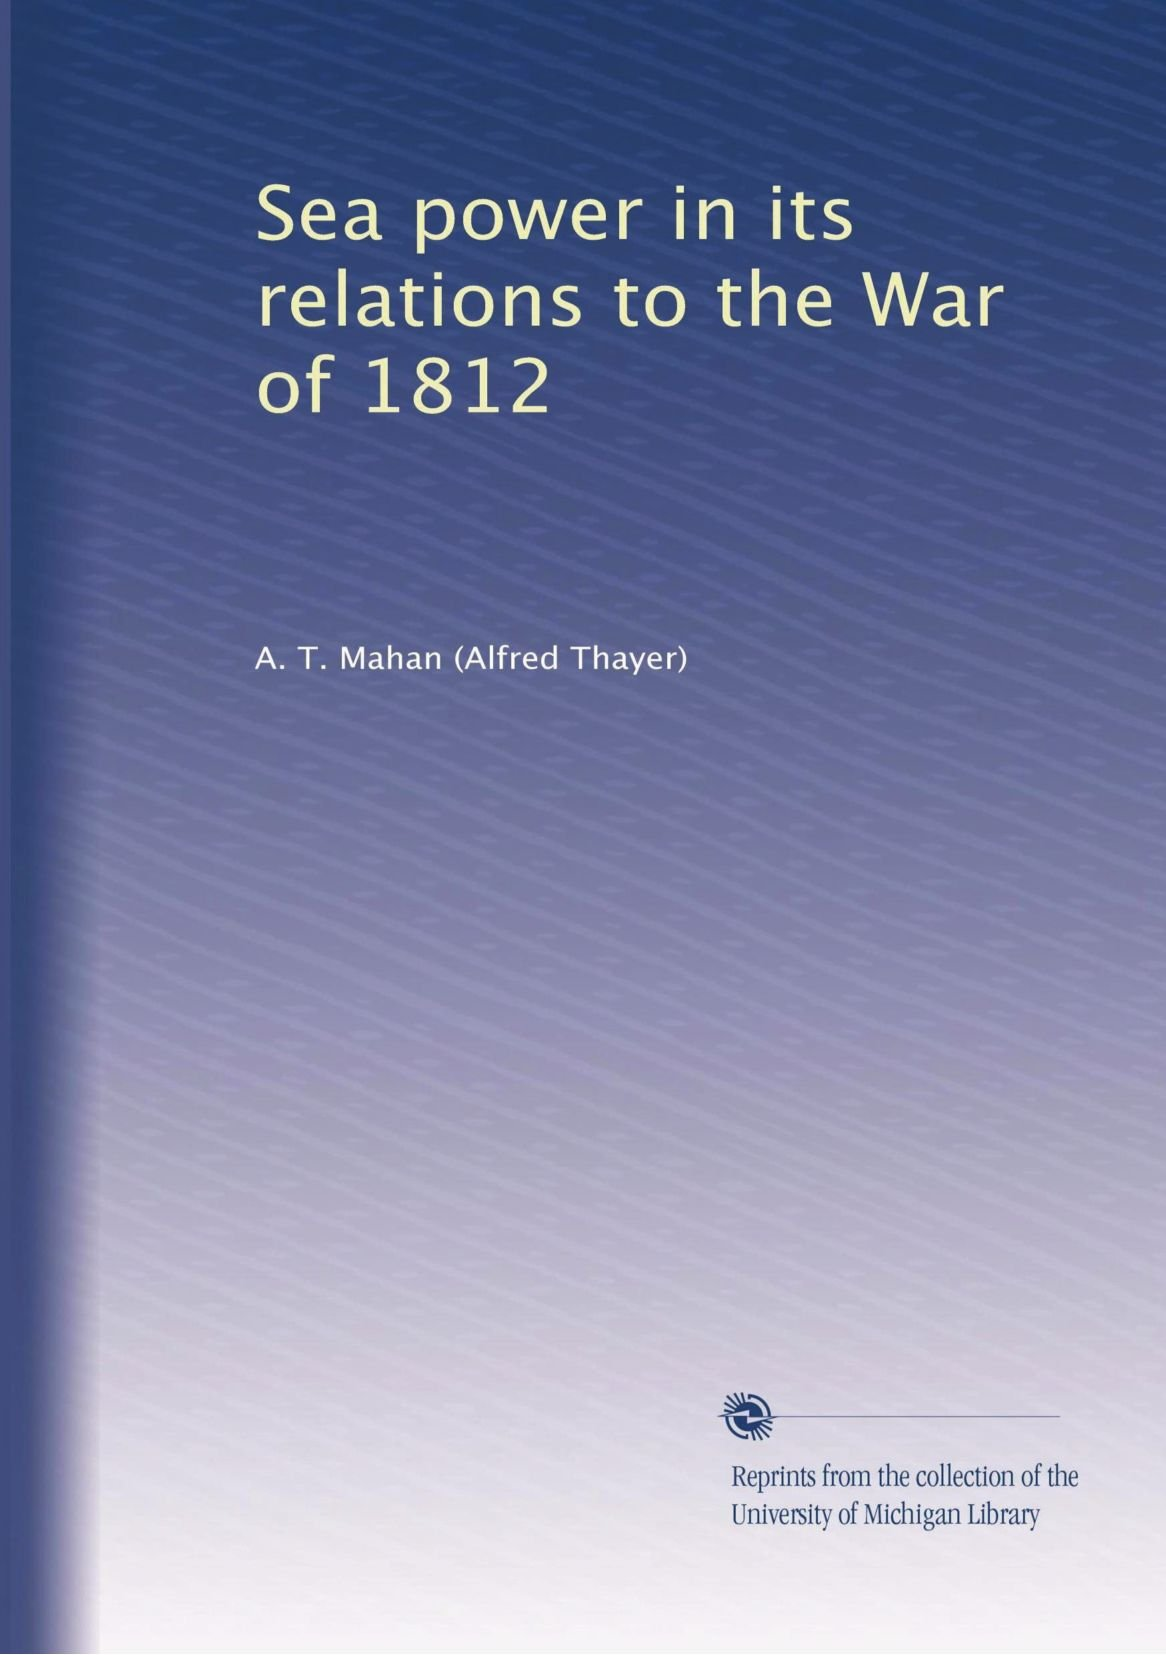 Download Sea power in its relations to the War of 1812 (Volume 2) pdf